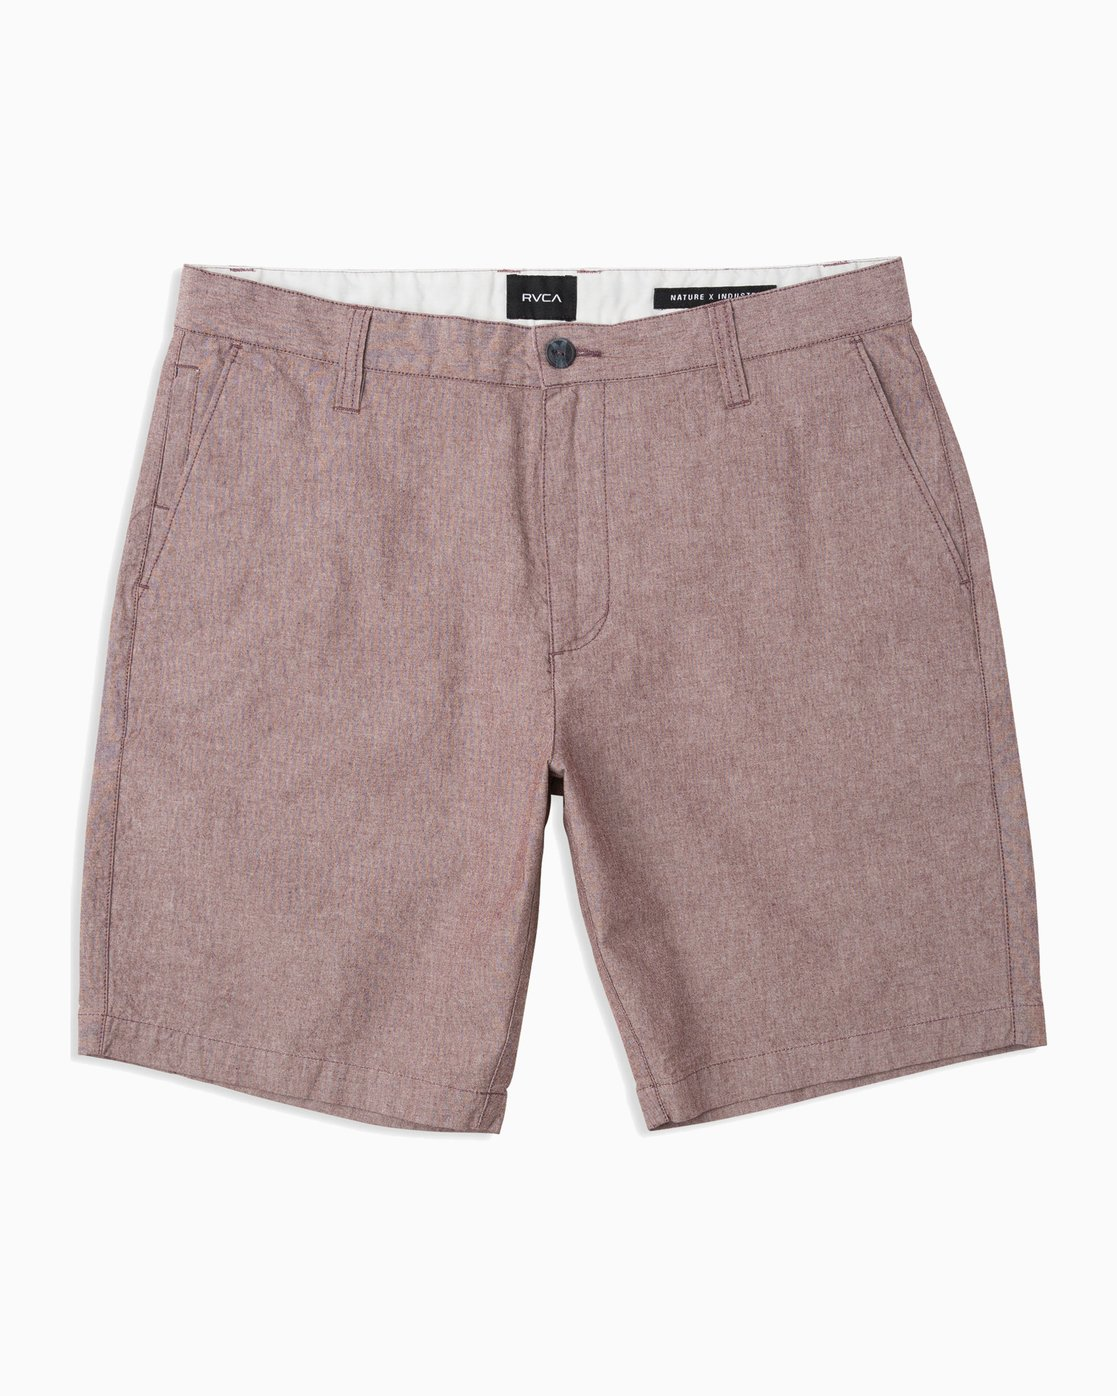 0 Boy's That'll Walk Oxford Short Red B210TRTW RVCA